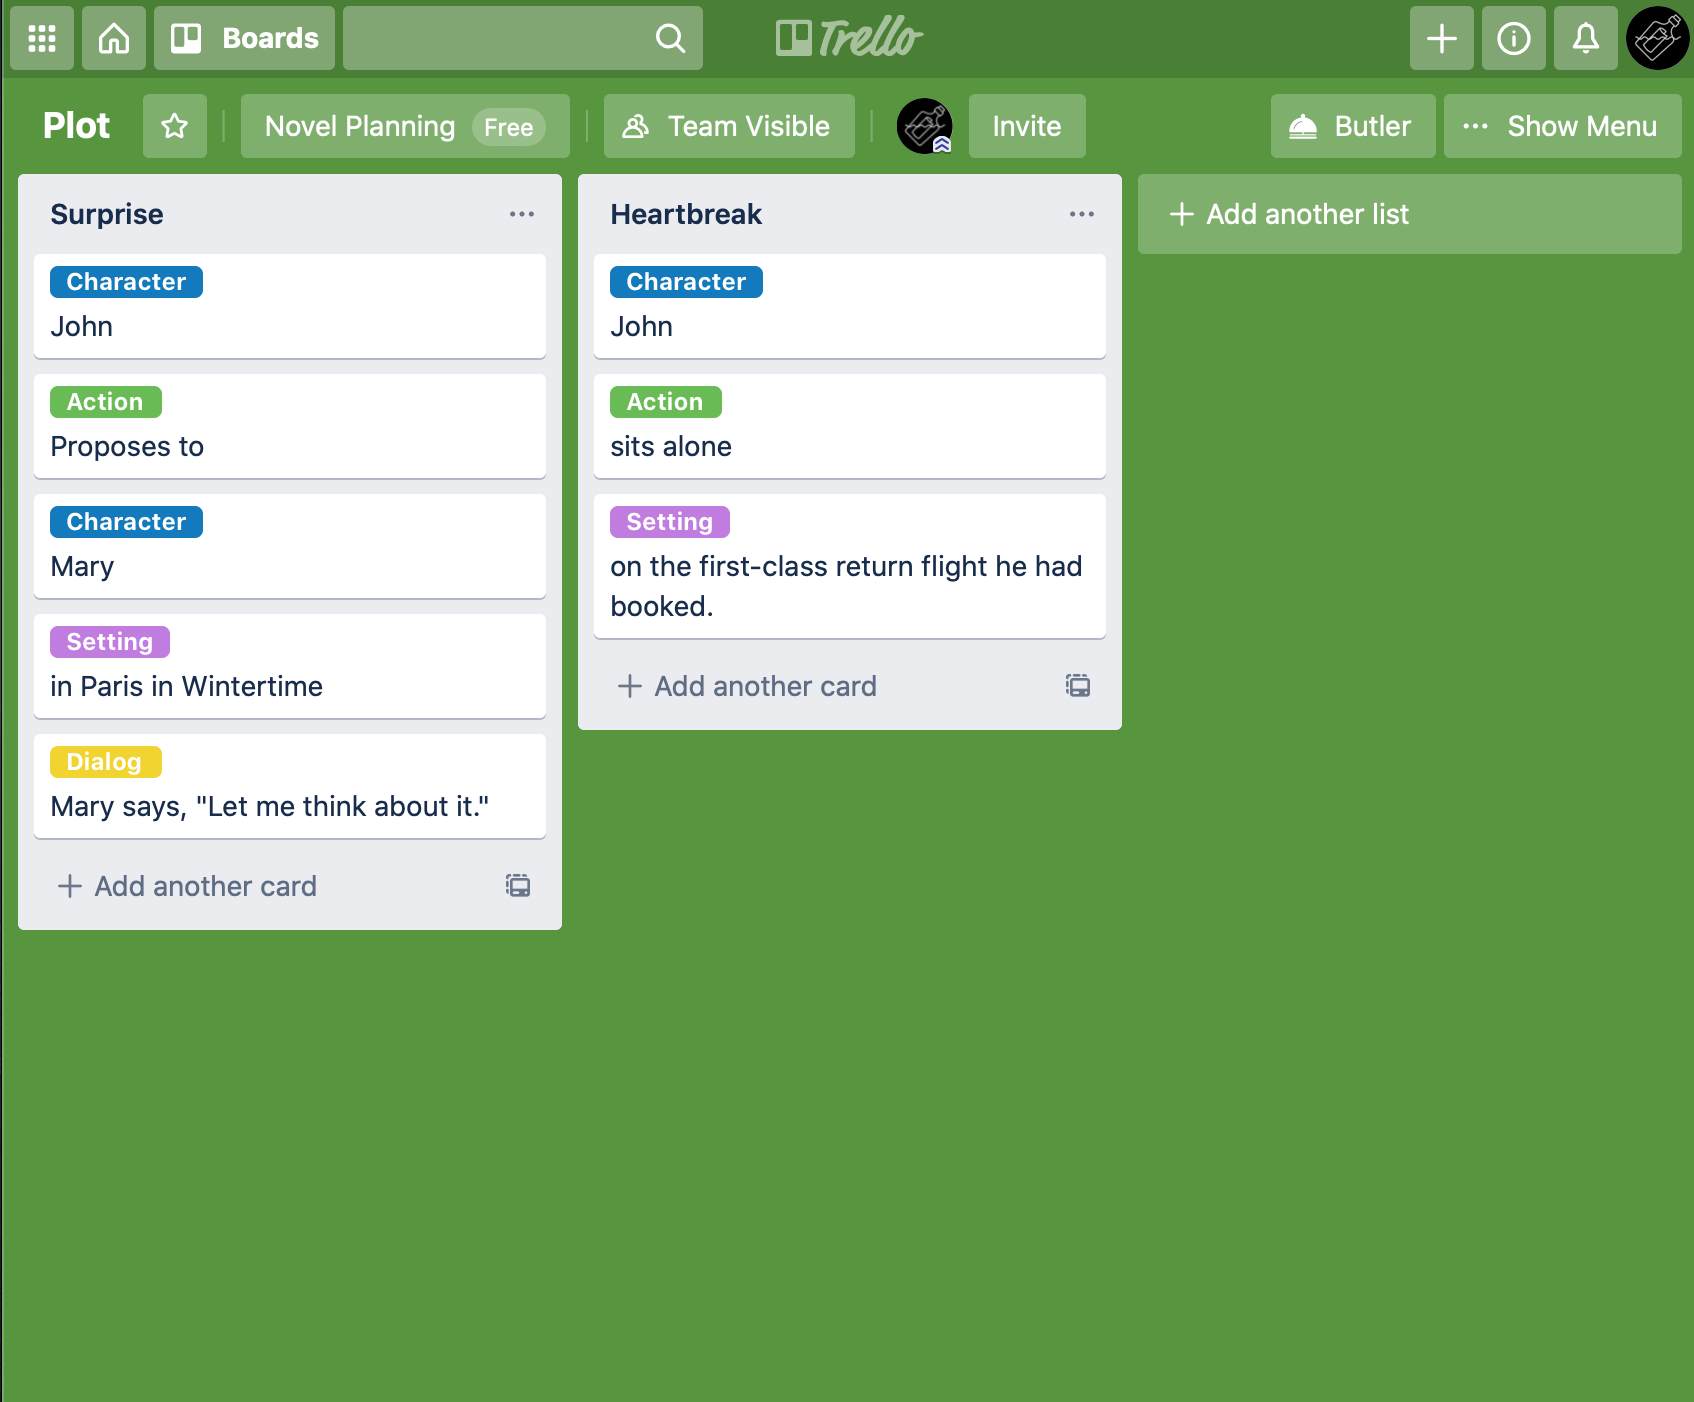 Image created by author using Trello